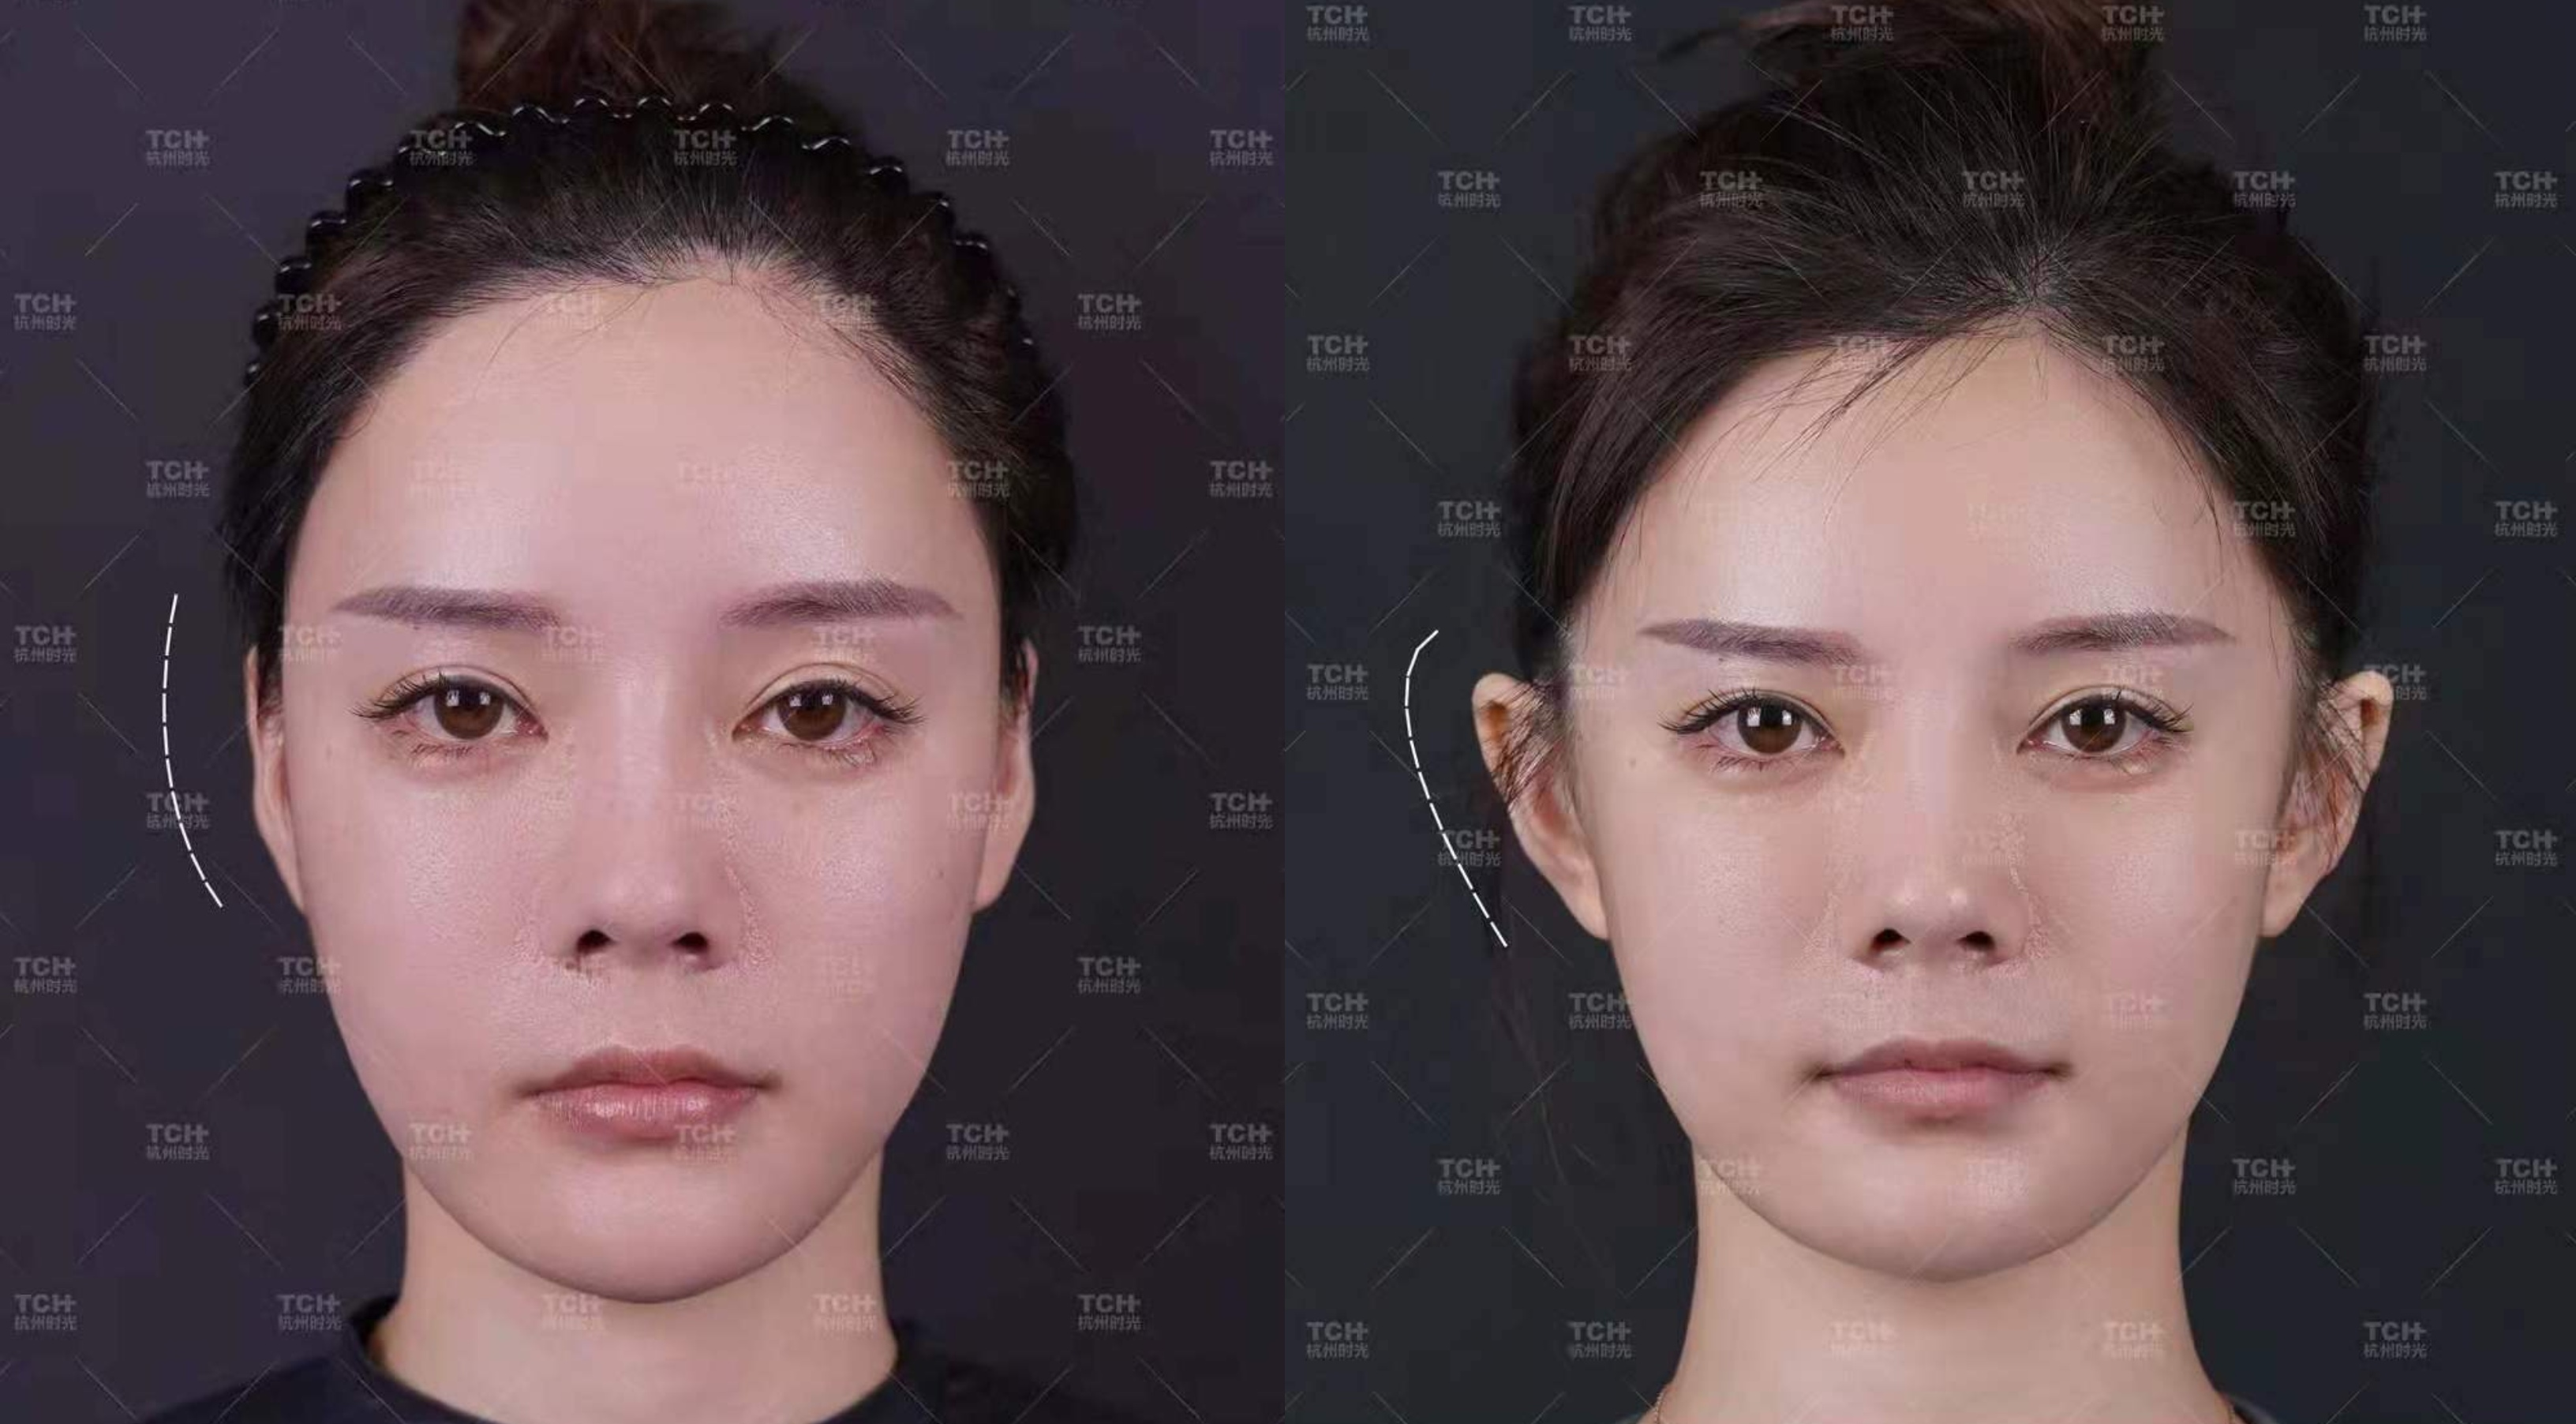 Elf Ears' Are Trending in China. People Are Undergoing Surgery To Get Them.